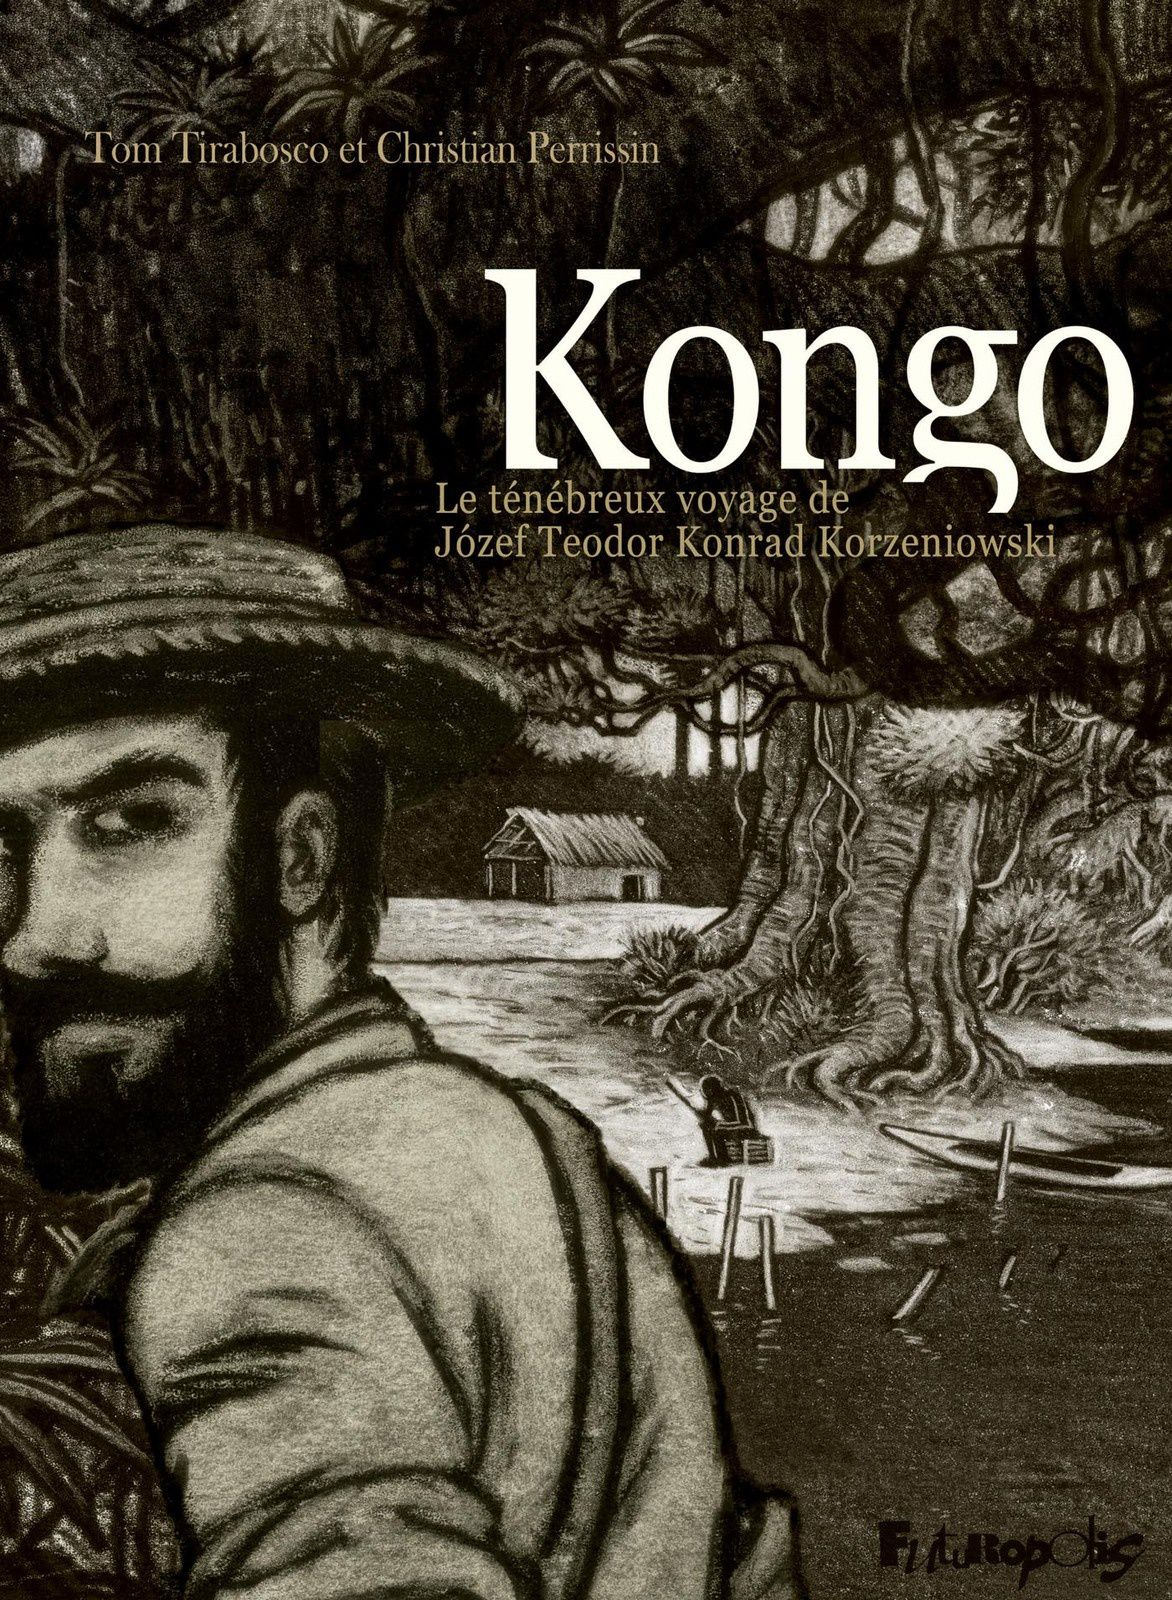 KONGO - Tom Tirabosco Christian Perrissin